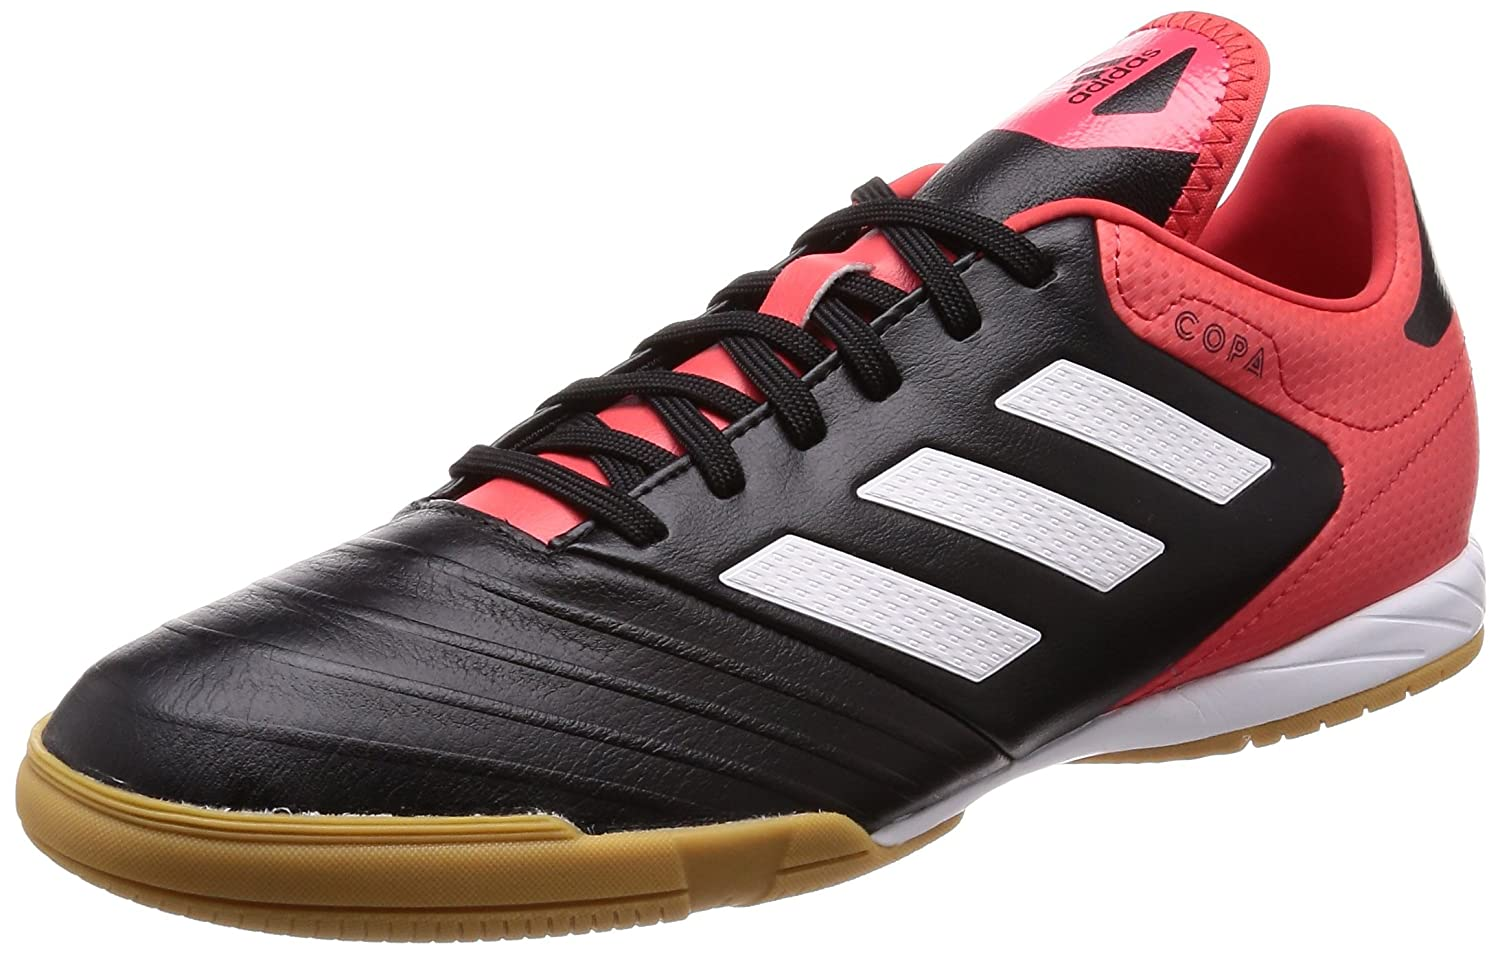 differently ffe89 58b8c adidas Copa Tango 18.3 In, Zapatillas de fútbol Sala para Hombre  Amazon.es Zapatos y complementos